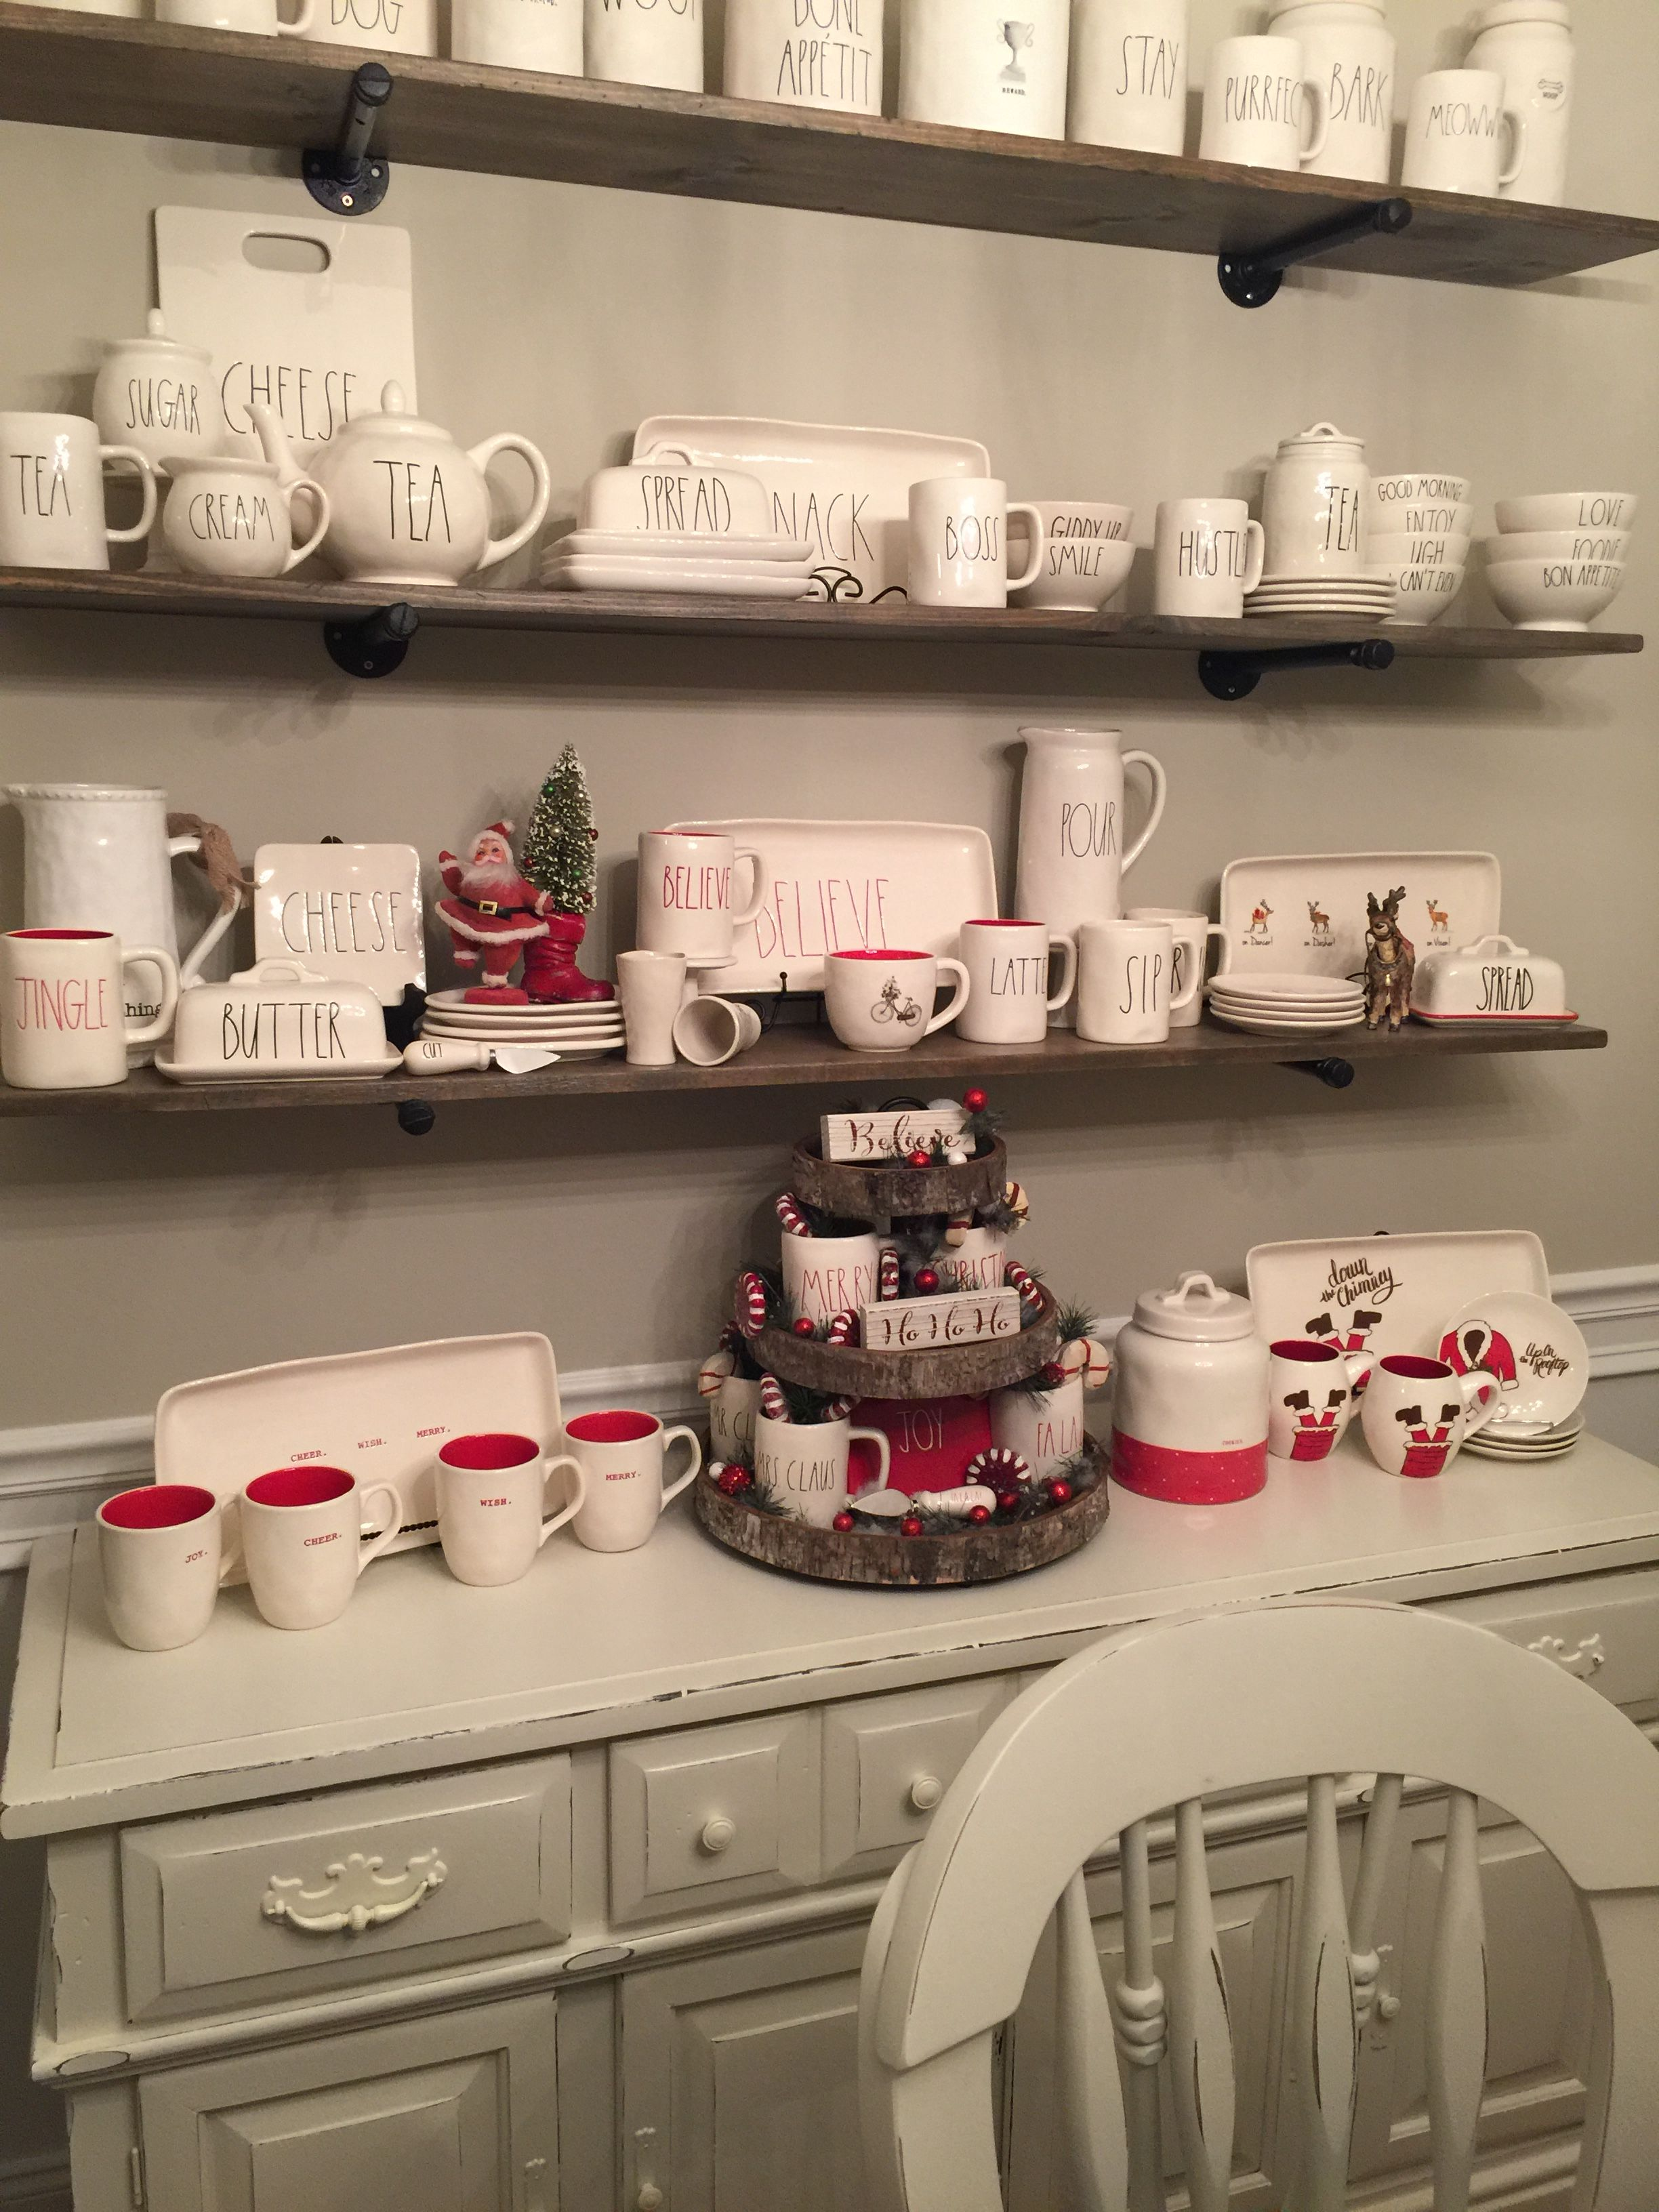 2017 Rae Dunn Christmas display | My Rae Dunn obsession ... Kitchen Coffee Display Ideas on regular kitchen ideas, cafe kitchen ideas, pineapple kitchen ideas, mint kitchen ideas, small kitchen ideas, tangerine kitchen ideas, california kitchen ideas, pewter kitchen ideas, strawberry kitchen ideas, mahogany kitchen ideas, starbucks kitchen ideas, light blue kitchen ideas, dry kitchen ideas, seafoam kitchen ideas, coffee themed kitchen, cookware kitchen ideas, wine kitchen ideas, top ten kitchen ideas, olive kitchen ideas, rust kitchen ideas,